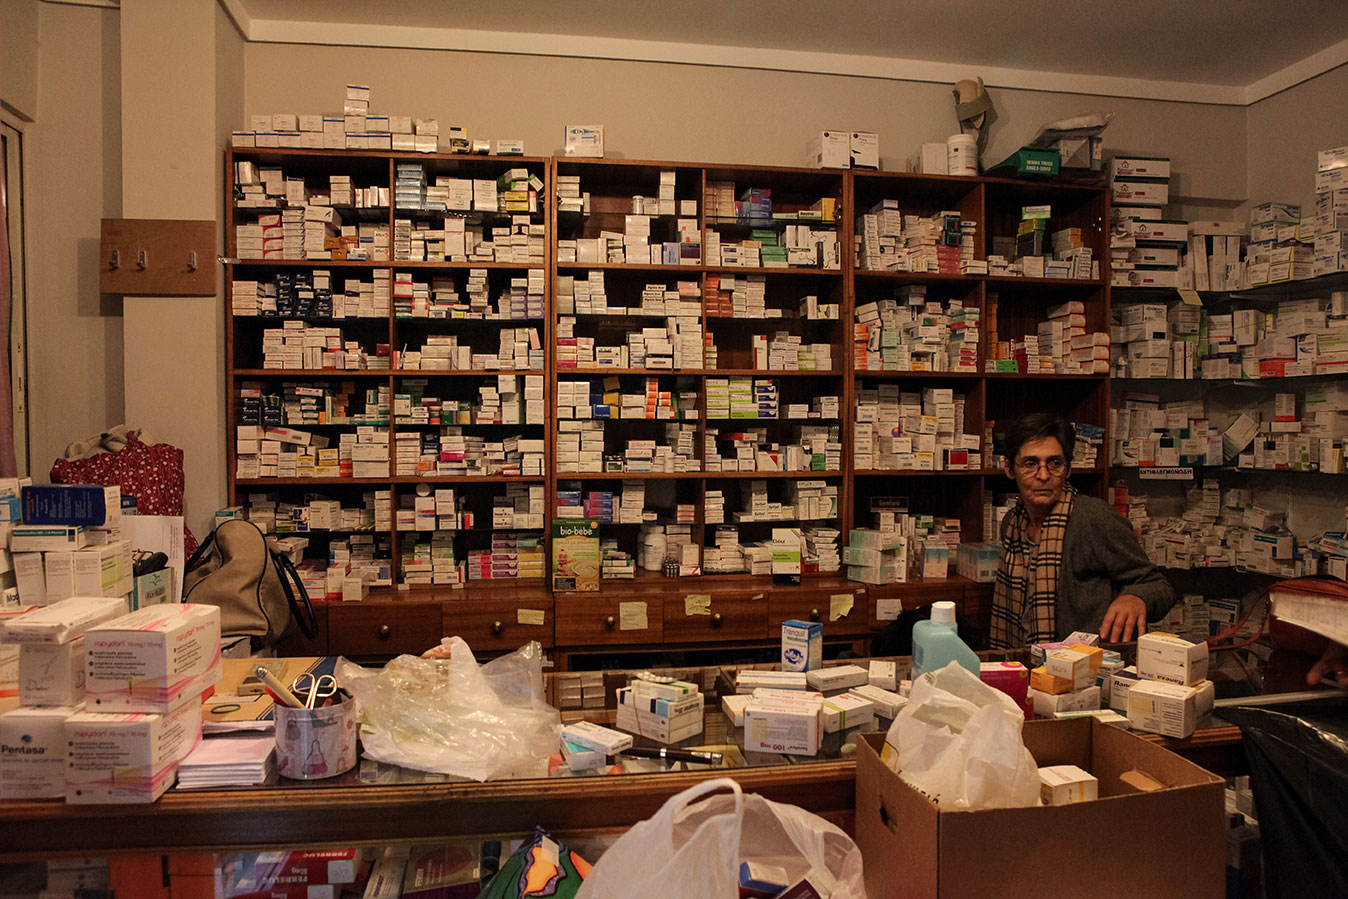 Created in 2011 with the purpose of providing basic health care services to Greek citizens and migrants deprived of social protection, the Community Clinic operates every day thanks to more than 300 doctors, nurses and pharmacists who volunteer their time. Medications, which are provided for free, are collected through gifts from the local population.